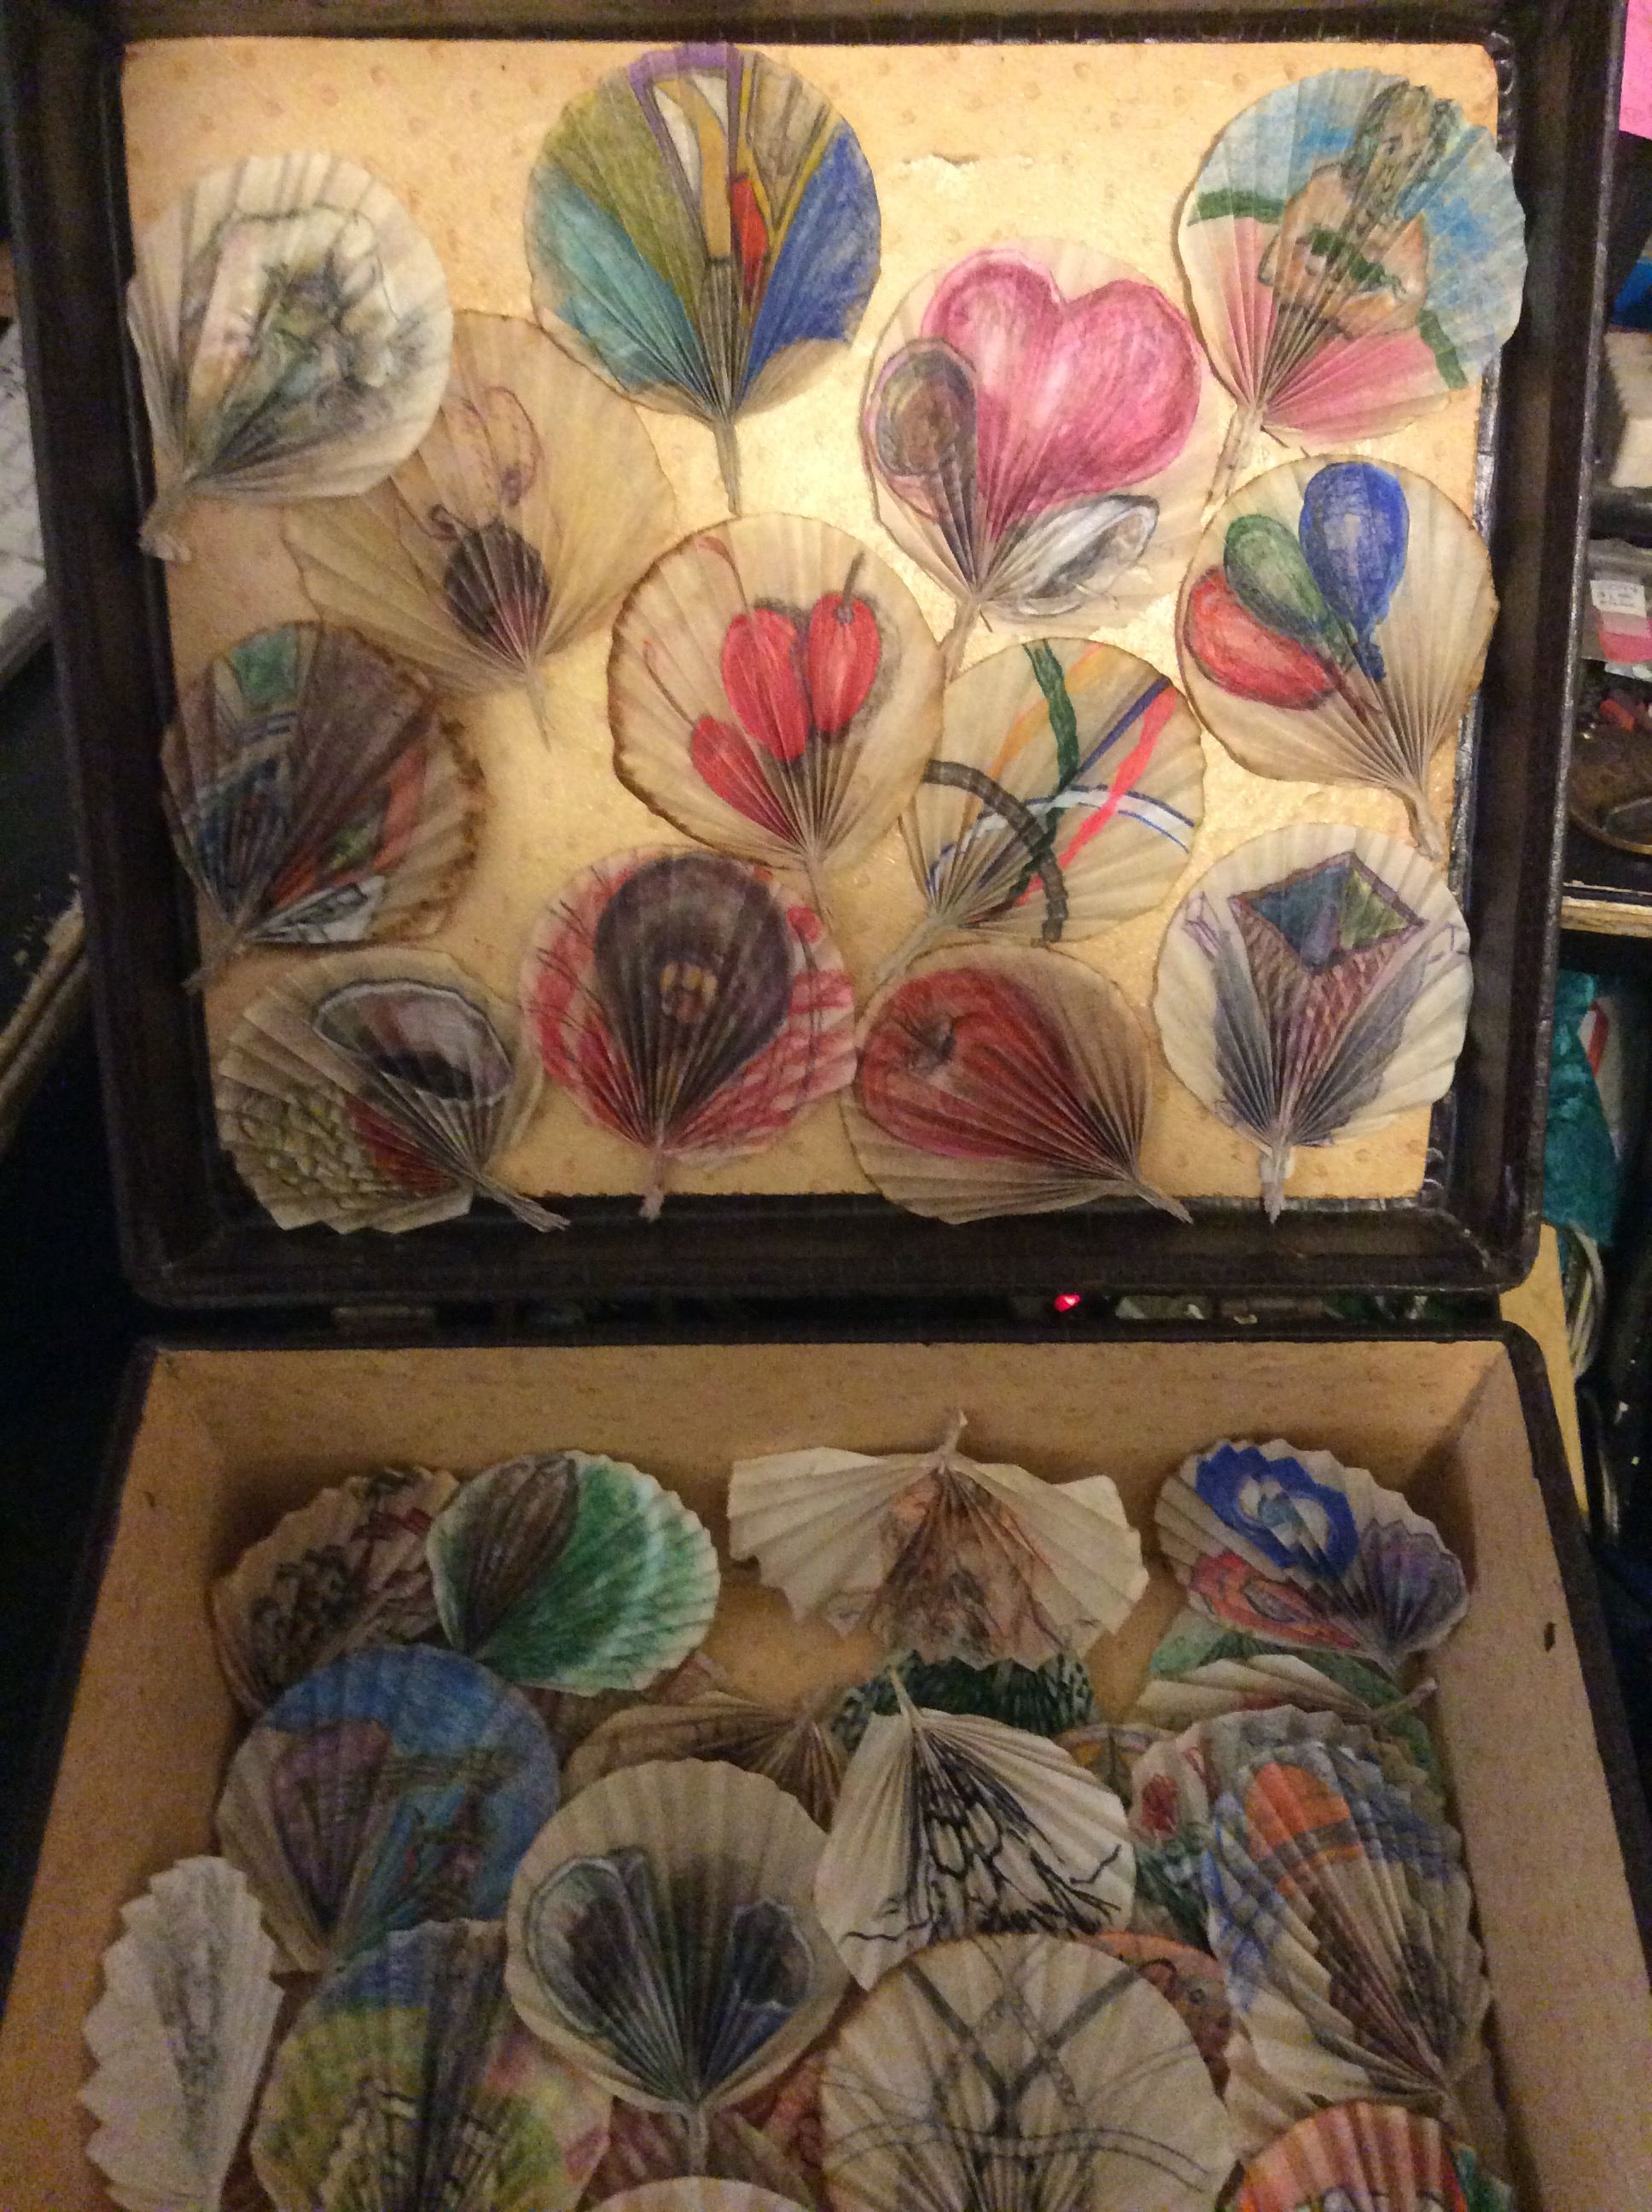 An old suitcase filled with cone filter drawings.